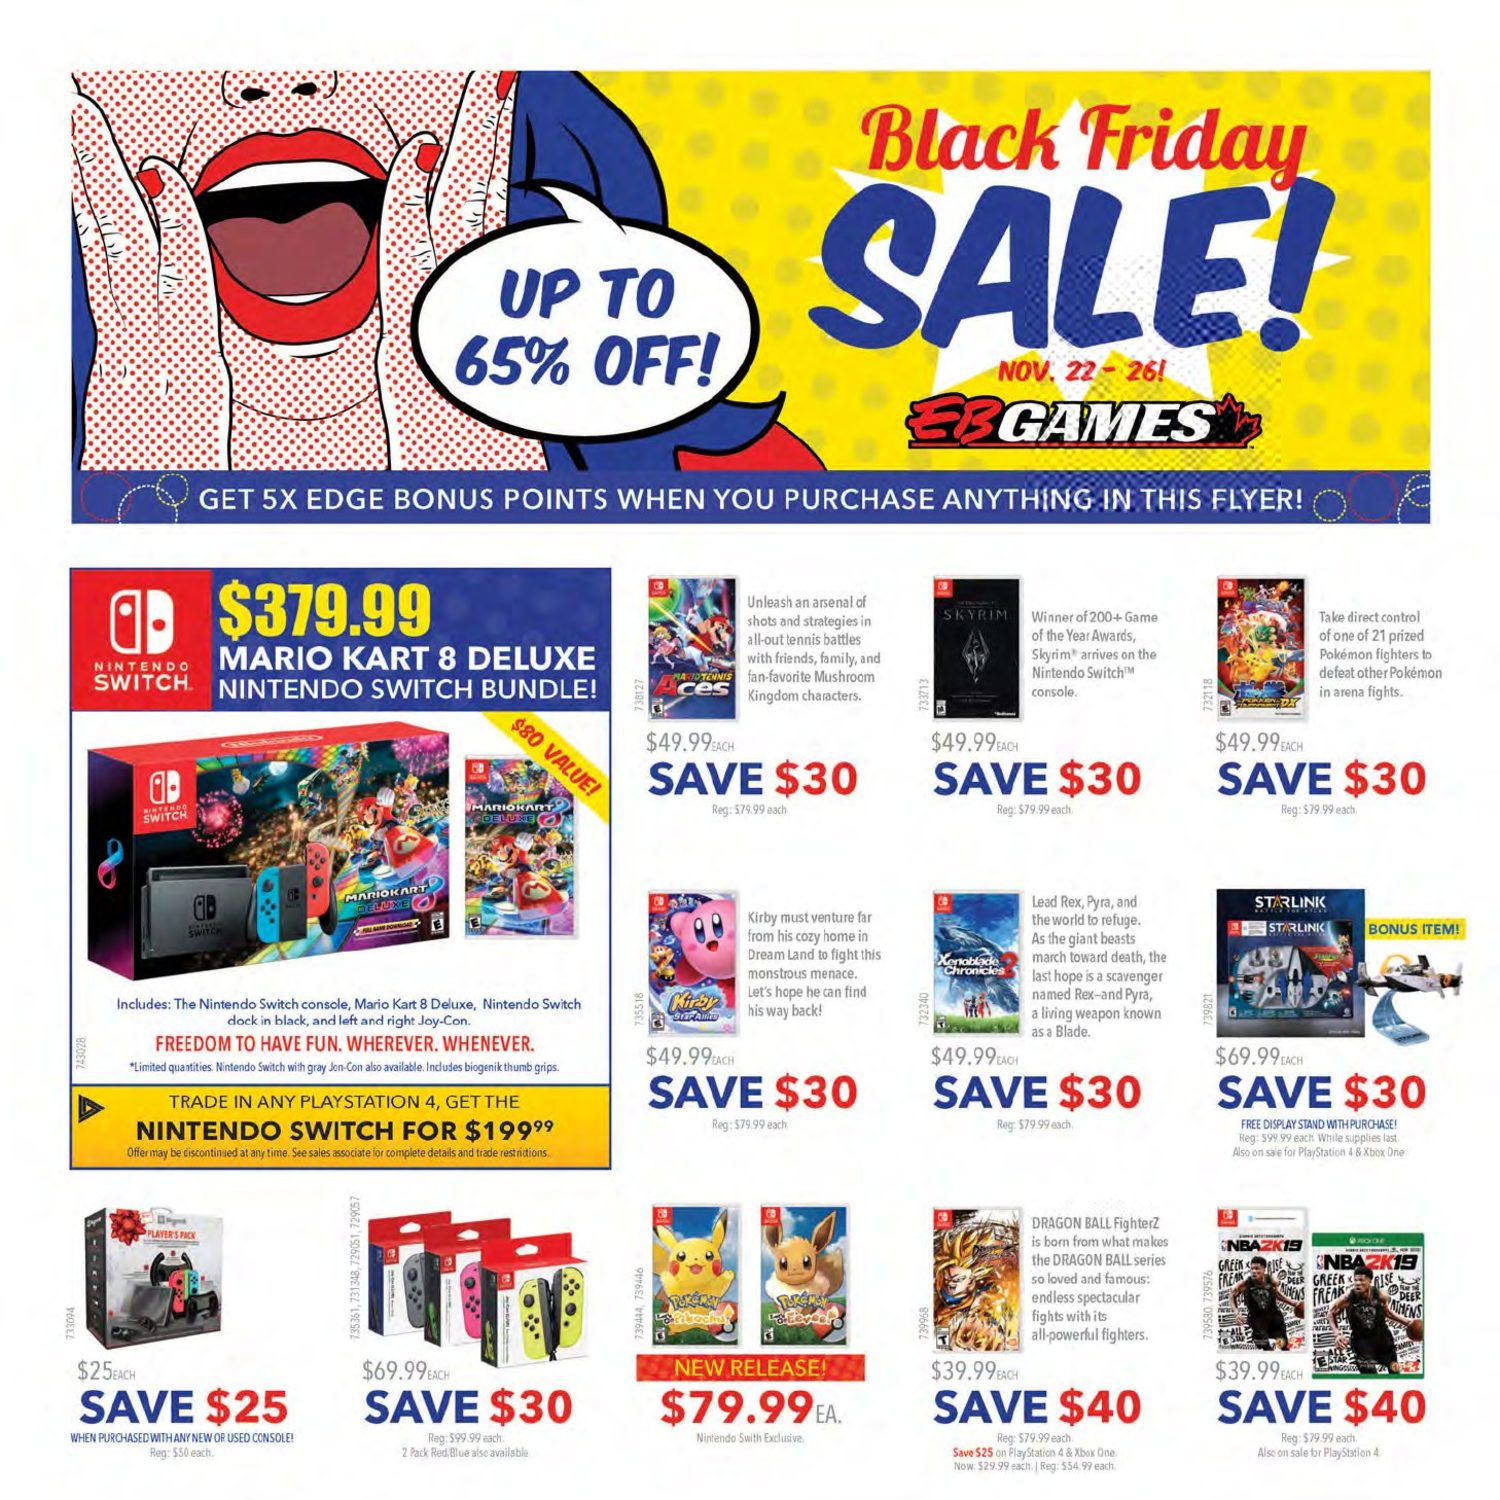 EB Games Products on Sale